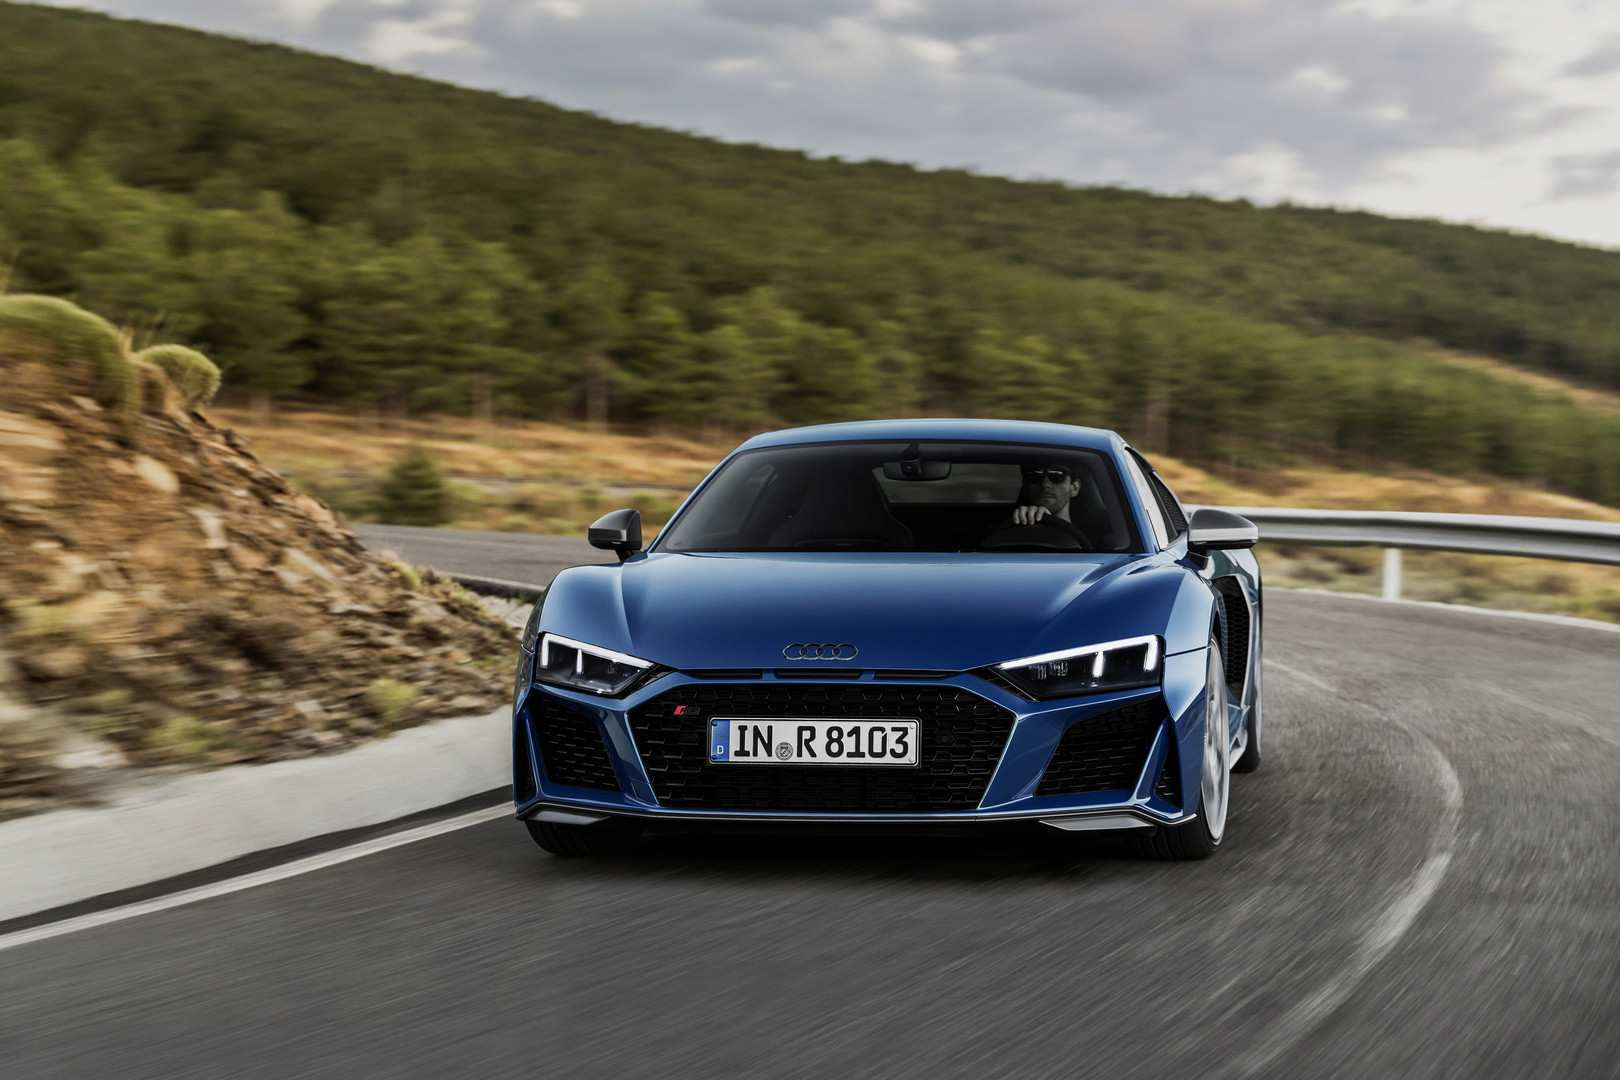 63 A 2019 Audi R8 V10 Spyder Exterior And Interior